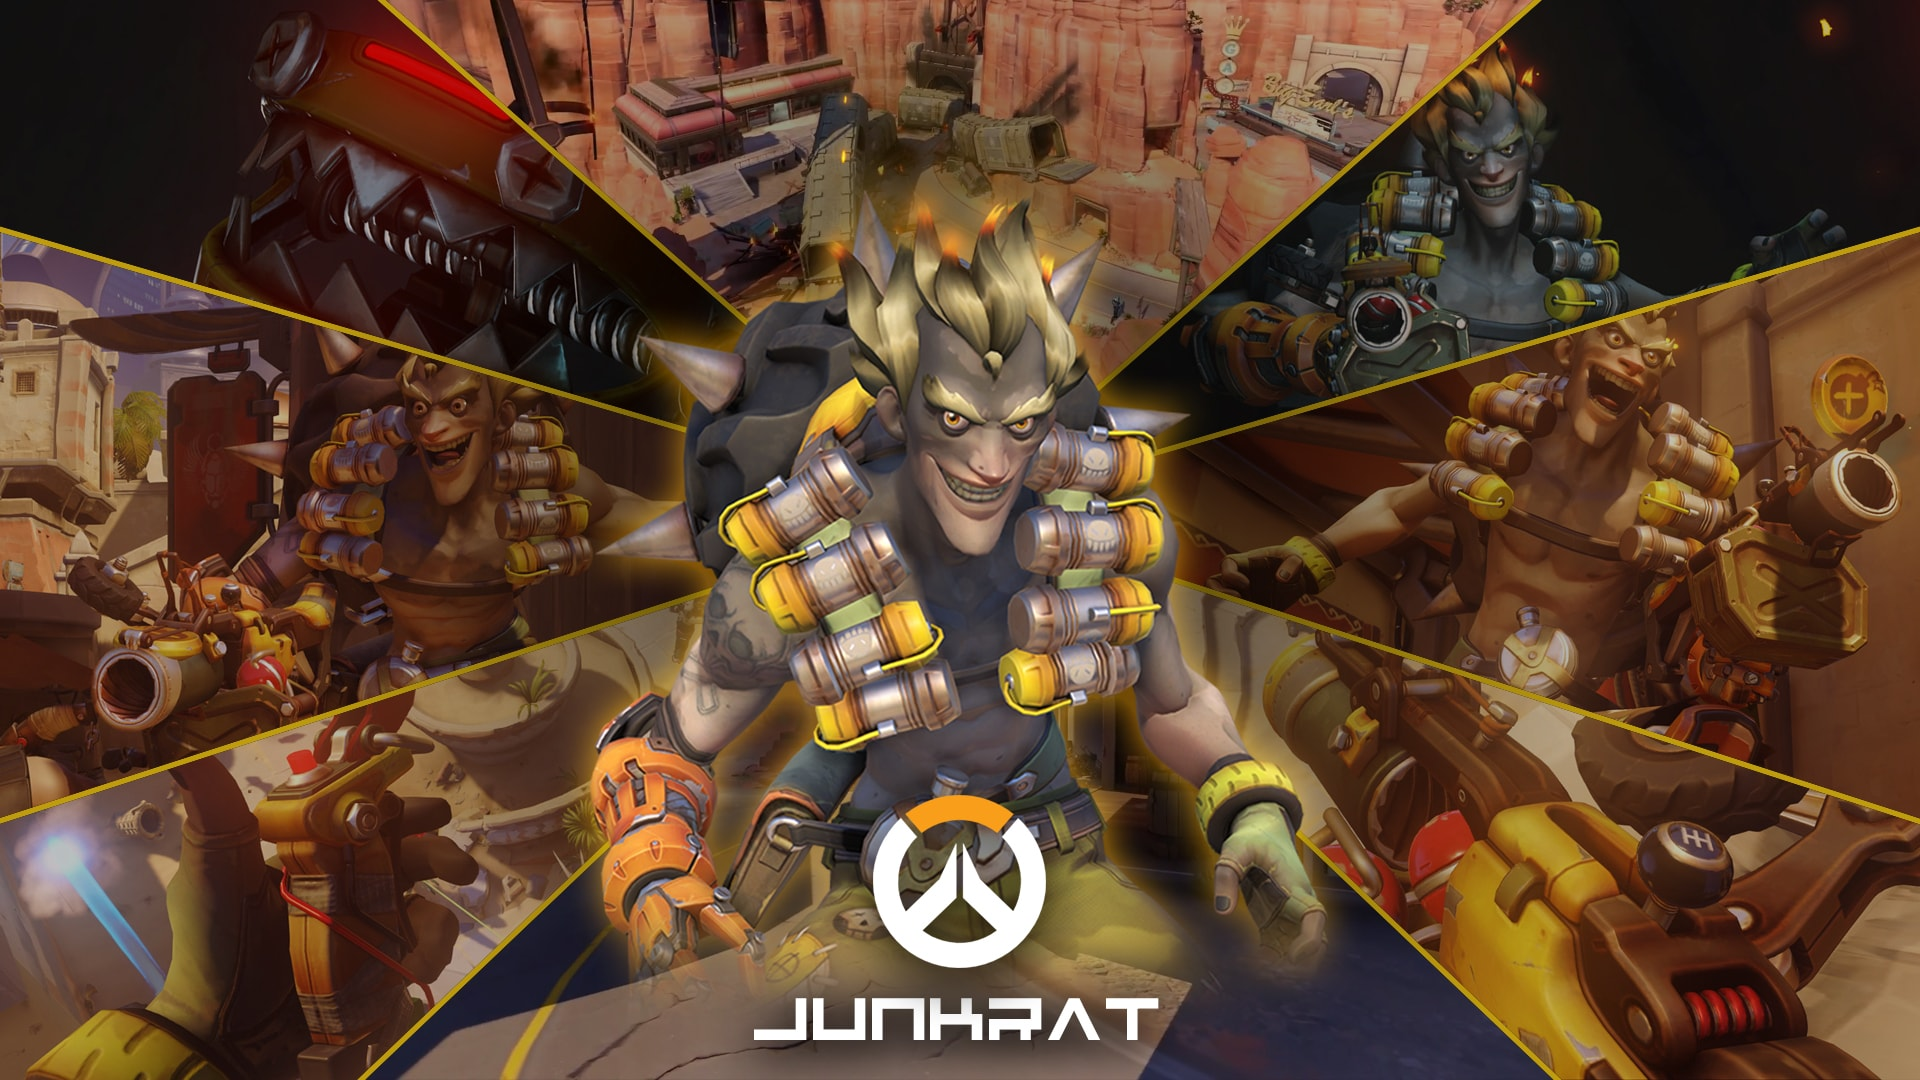 Overwatch : Junkrat Full hd wallpapers